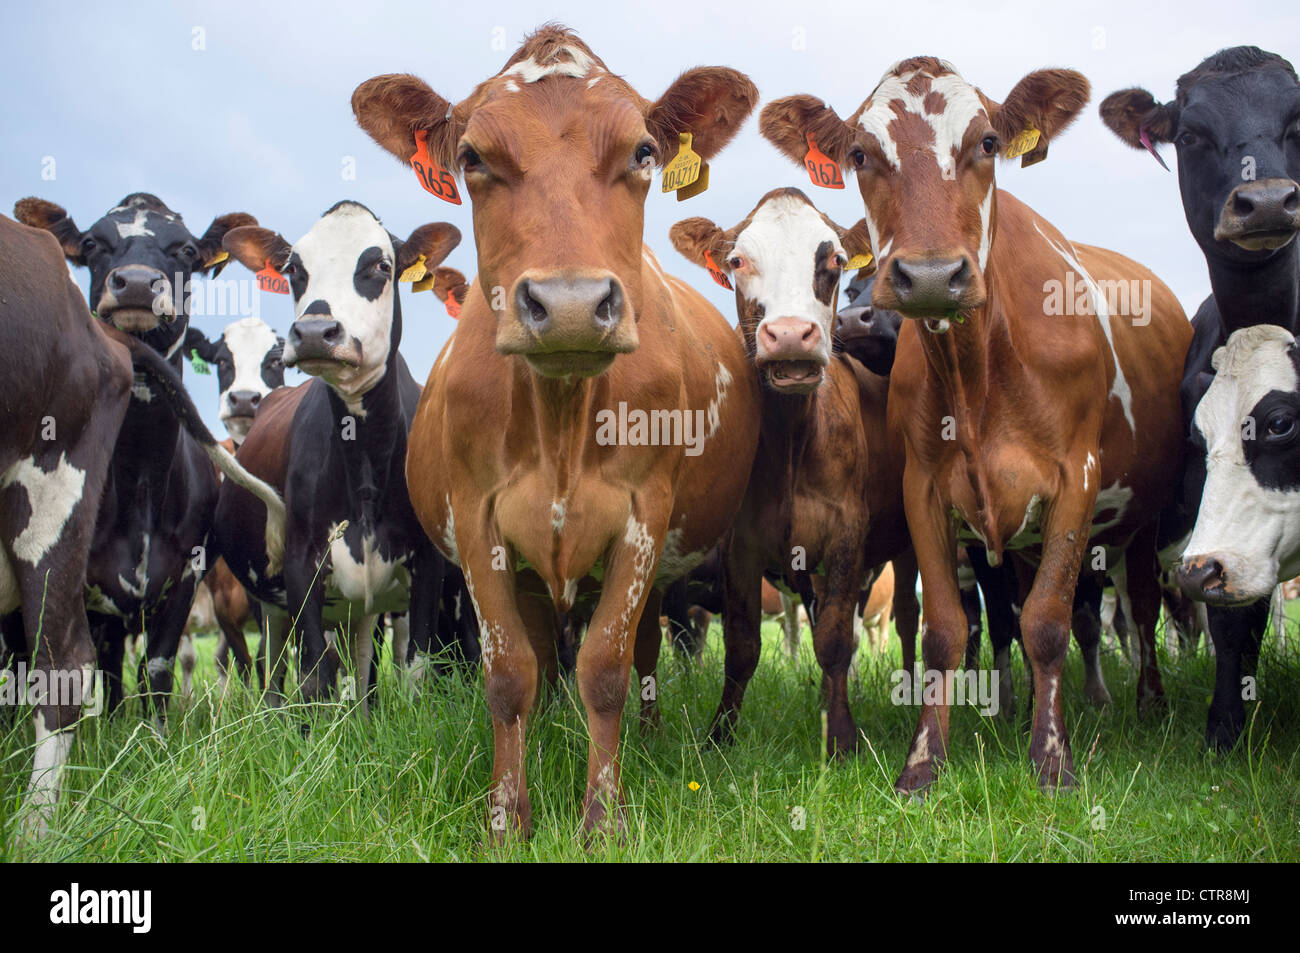 Cows in Field Staring at Camera Stock Photo